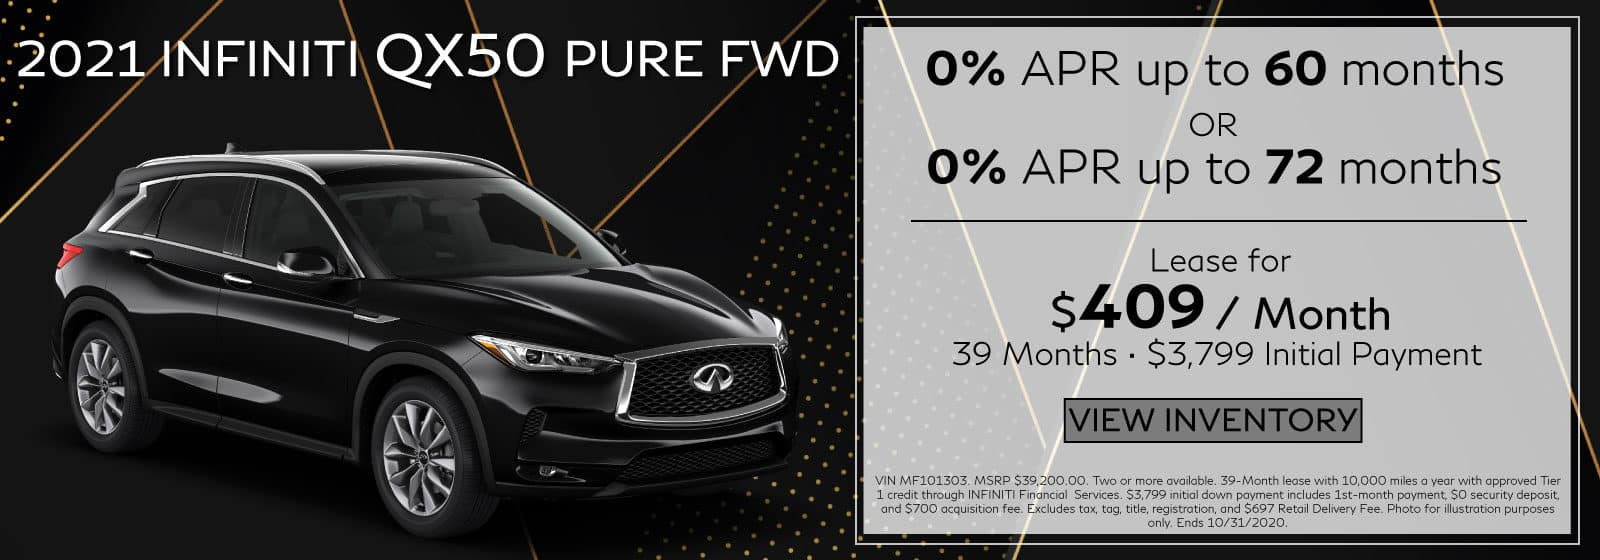 2020 QX50 PURE. $409 a month for 39 months. $3,799 initial payment. 0% APR up to 60 Months OR 0% APR for 72 months. Black QX50 on black abstract background. View Inventory button.